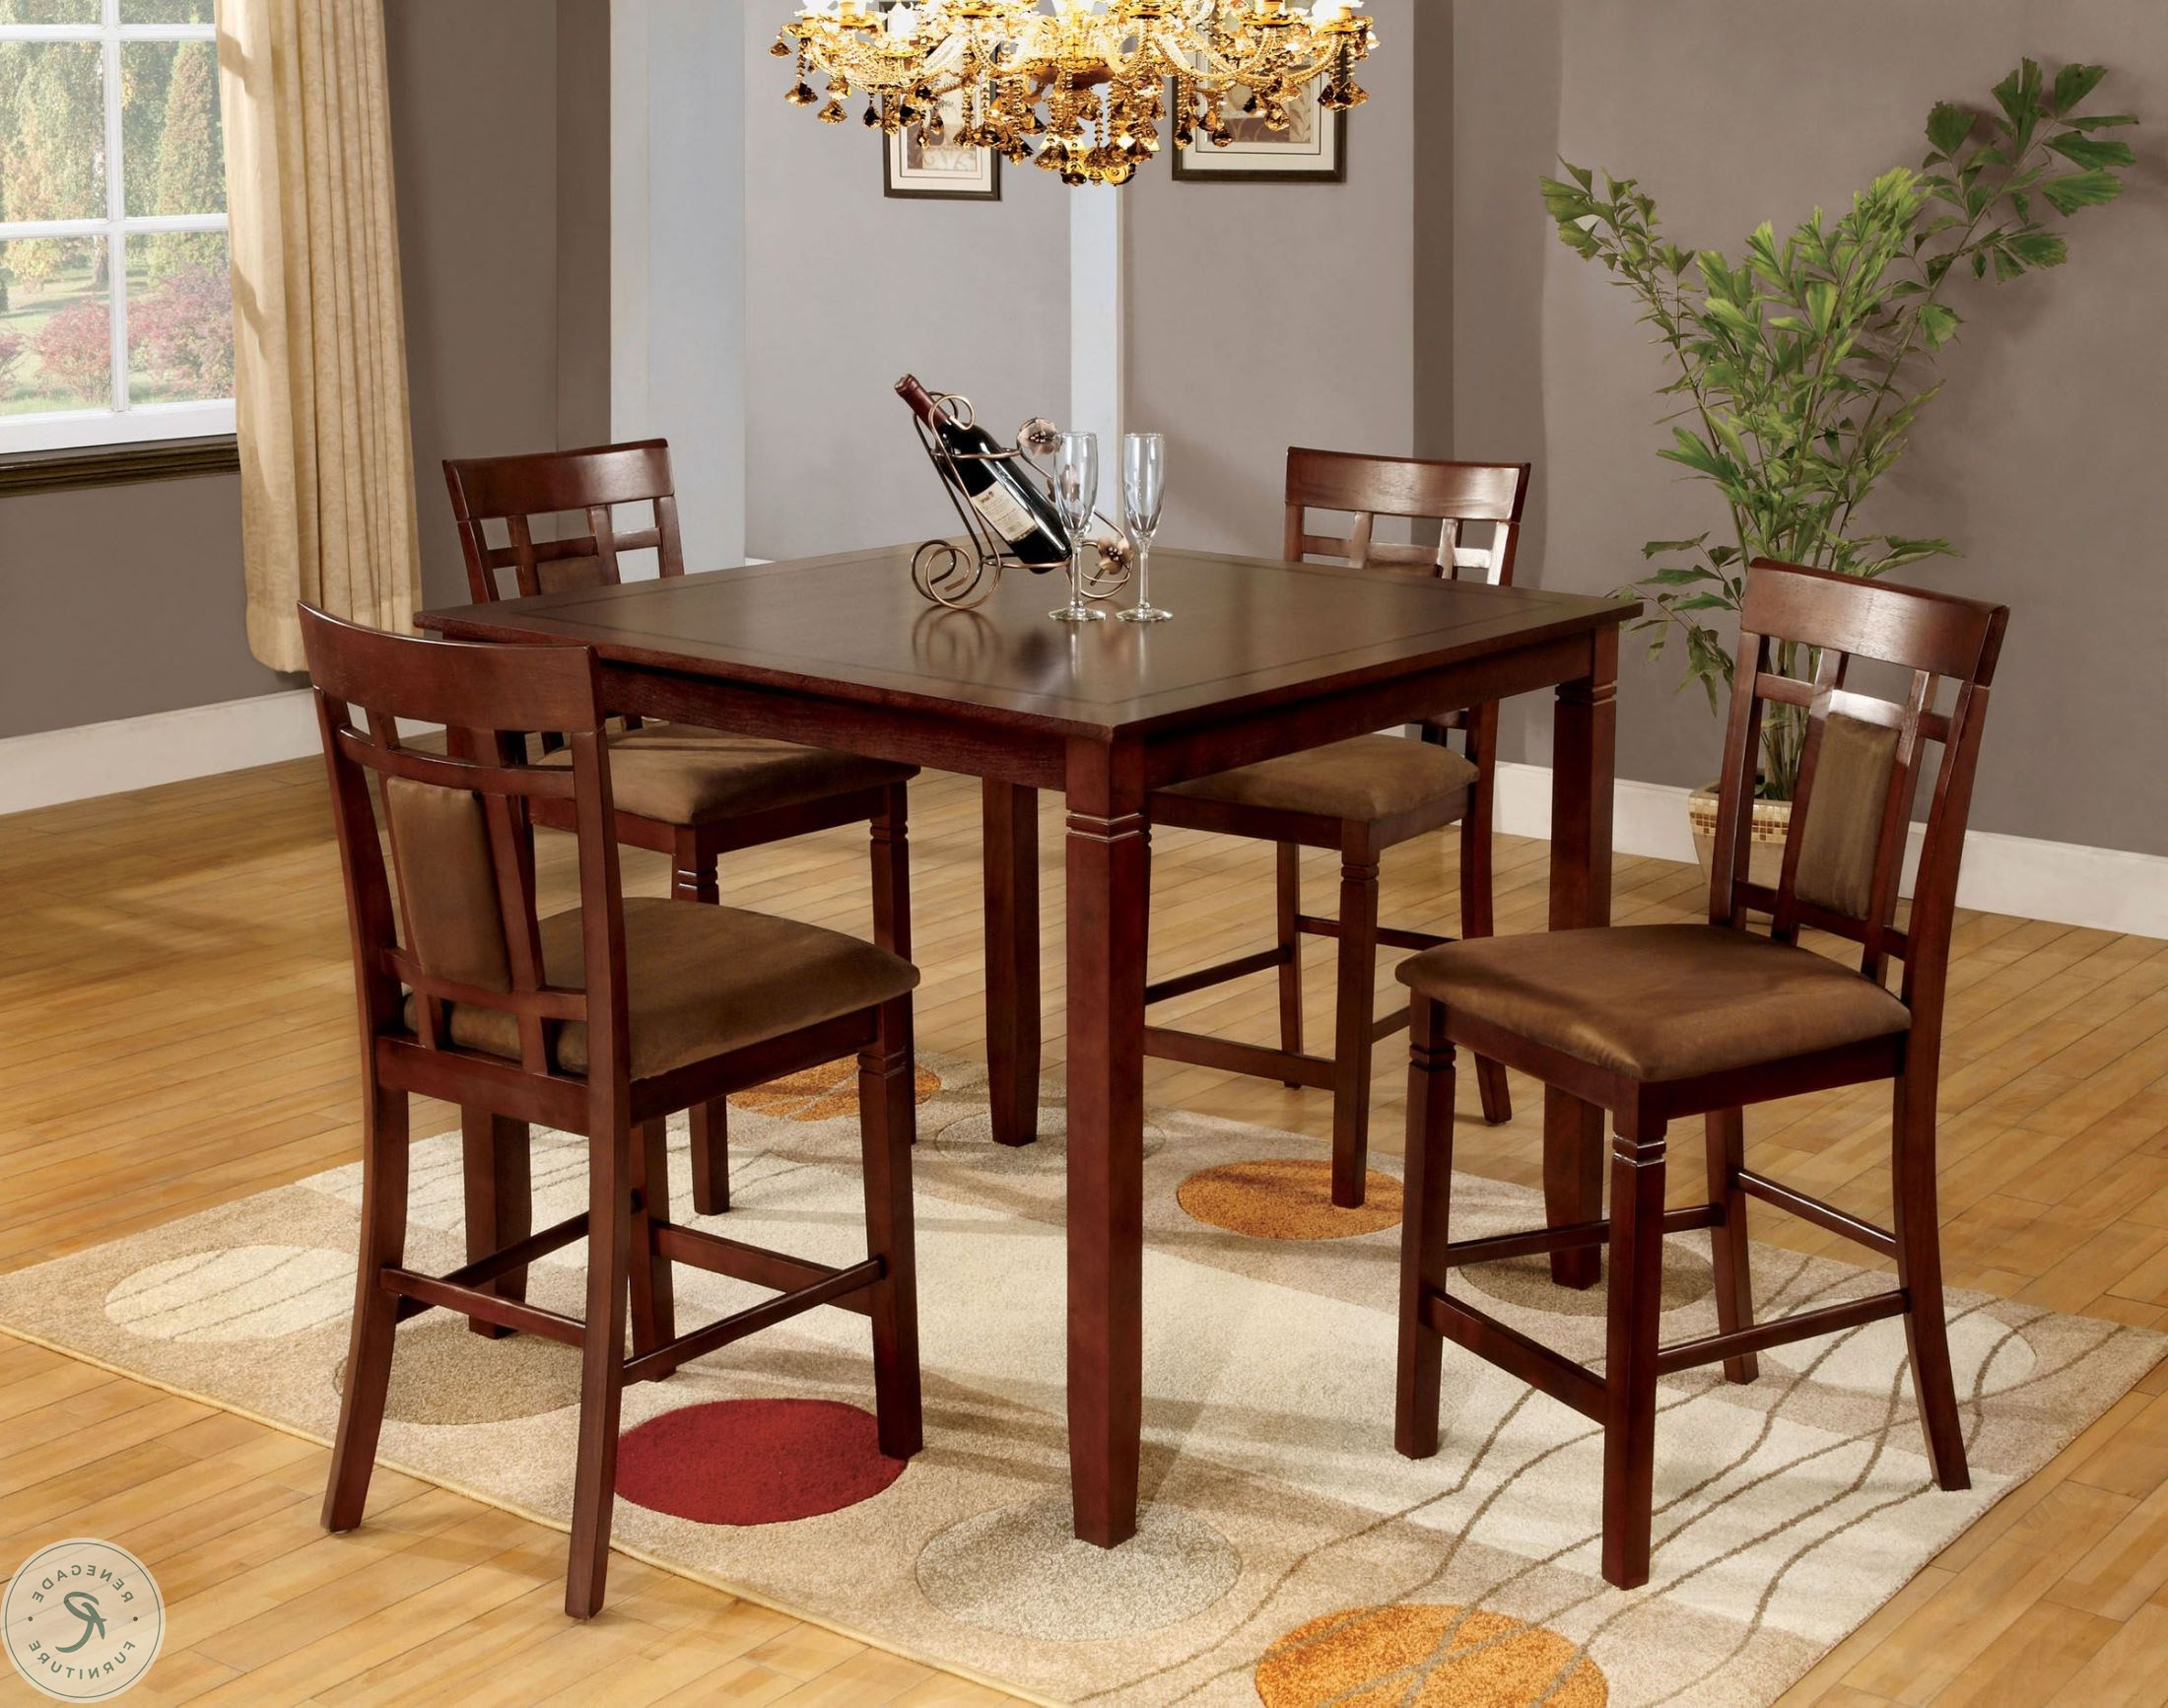 2017 Montclair Ii 5 Piece Counter Height Dining Table Set Throughout Anette 3 Piece Counter Height Dining Sets (View 20 of 20)